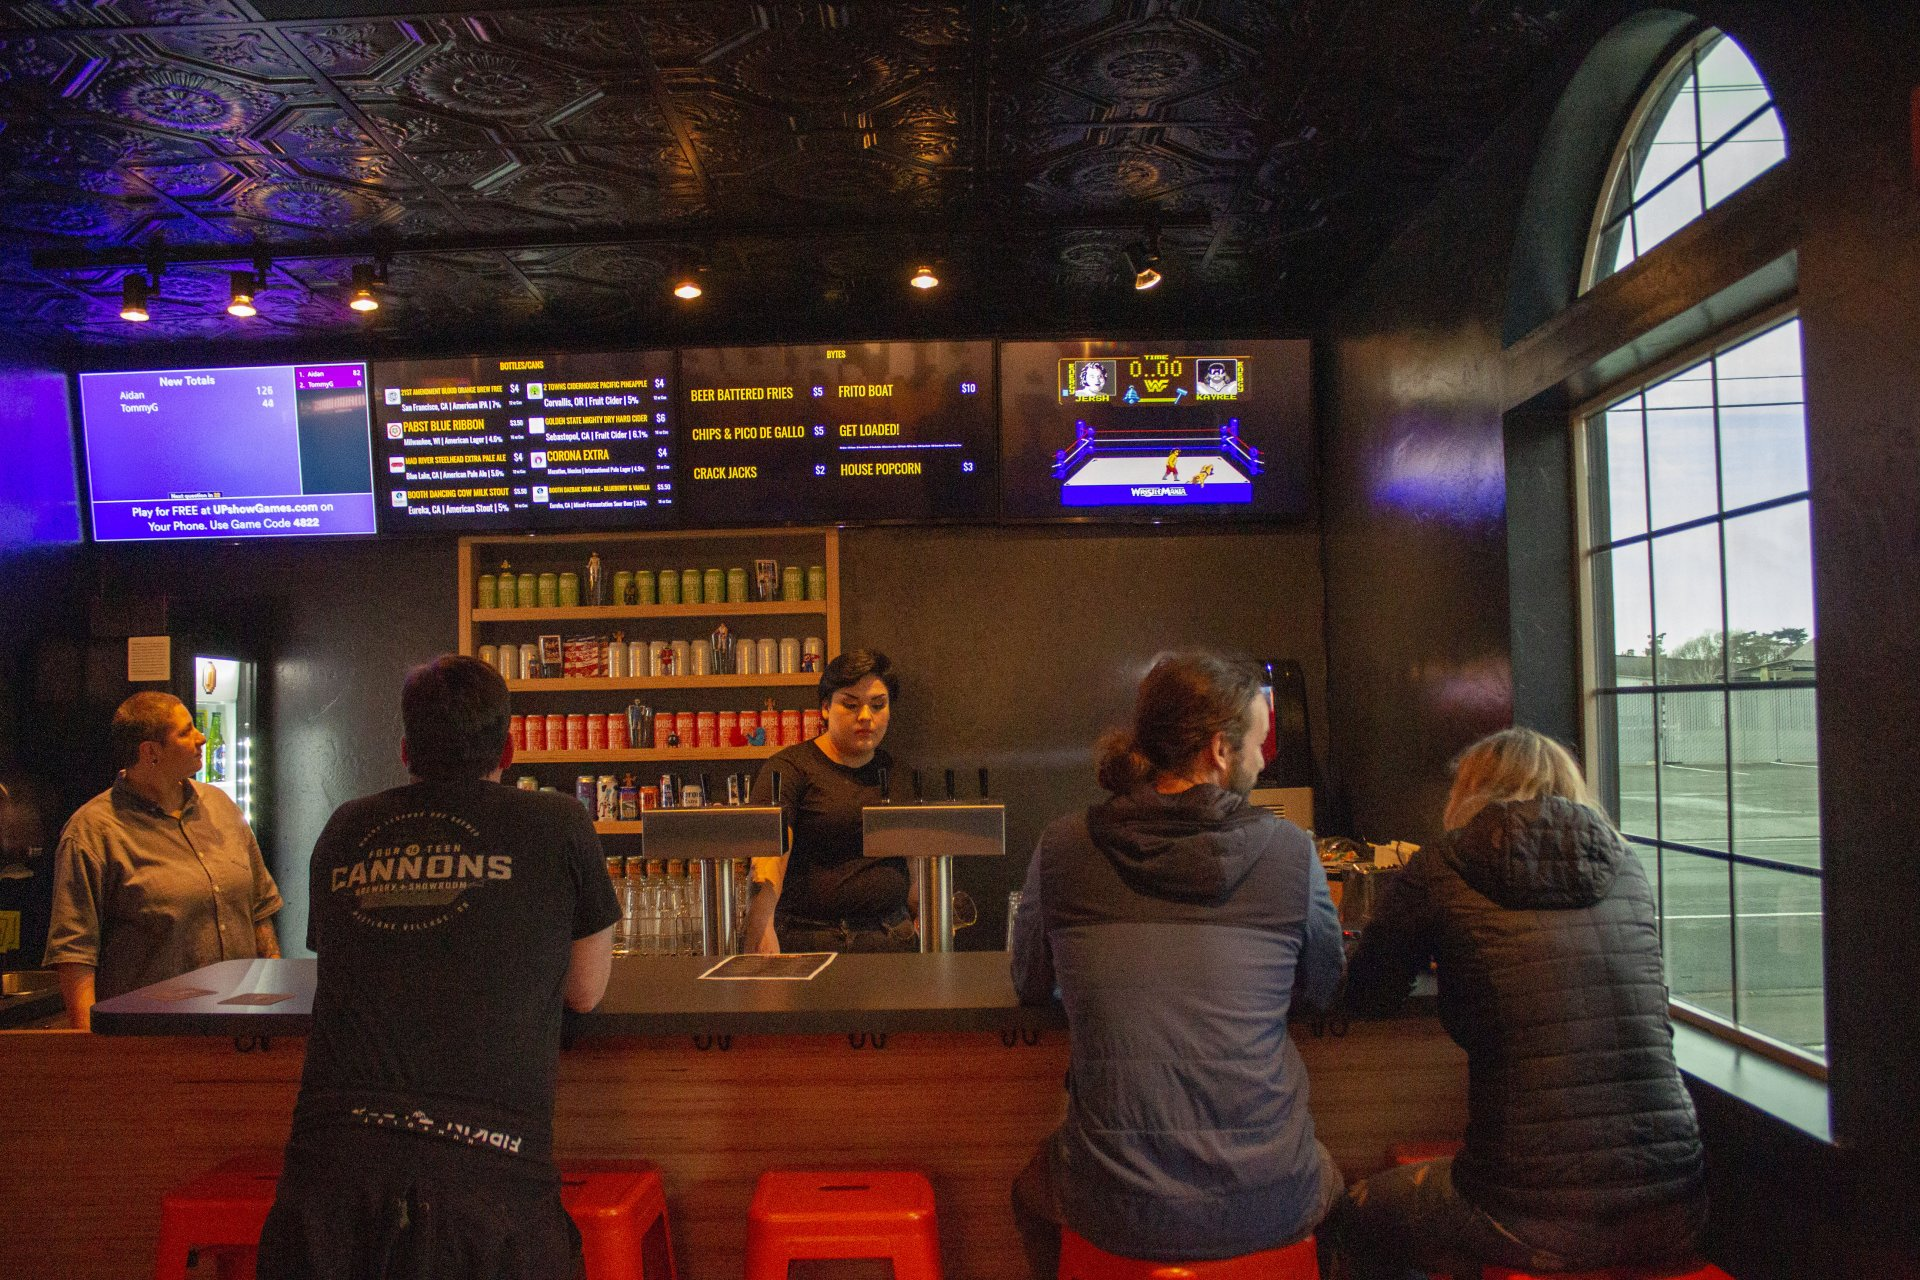 A few community members check out the new bar arcade, ARCADA, on Feb 23. | Photo by Alberto Muro